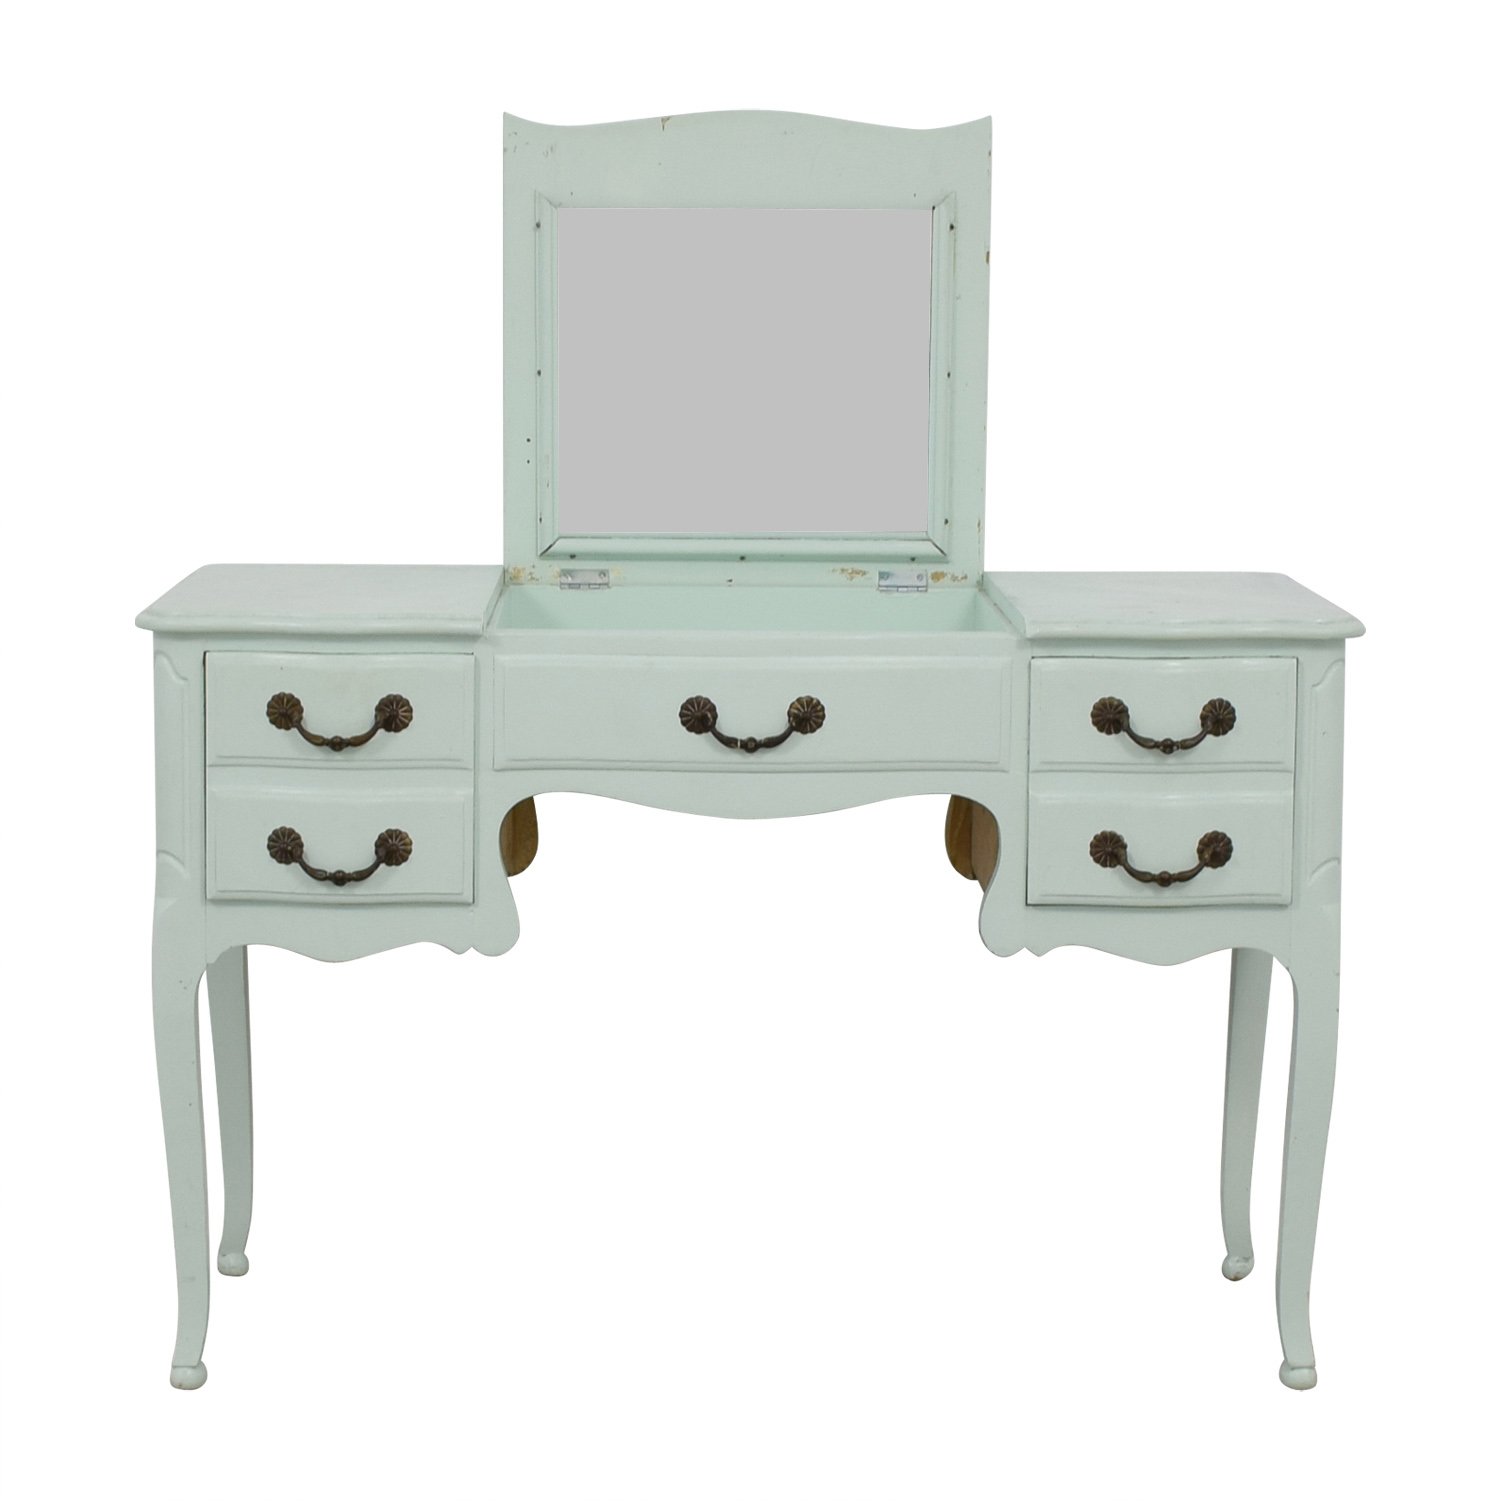 Davis Cabinet Company Davis Cabinet Company Aqua Desk or Vanity with Mirror on sale